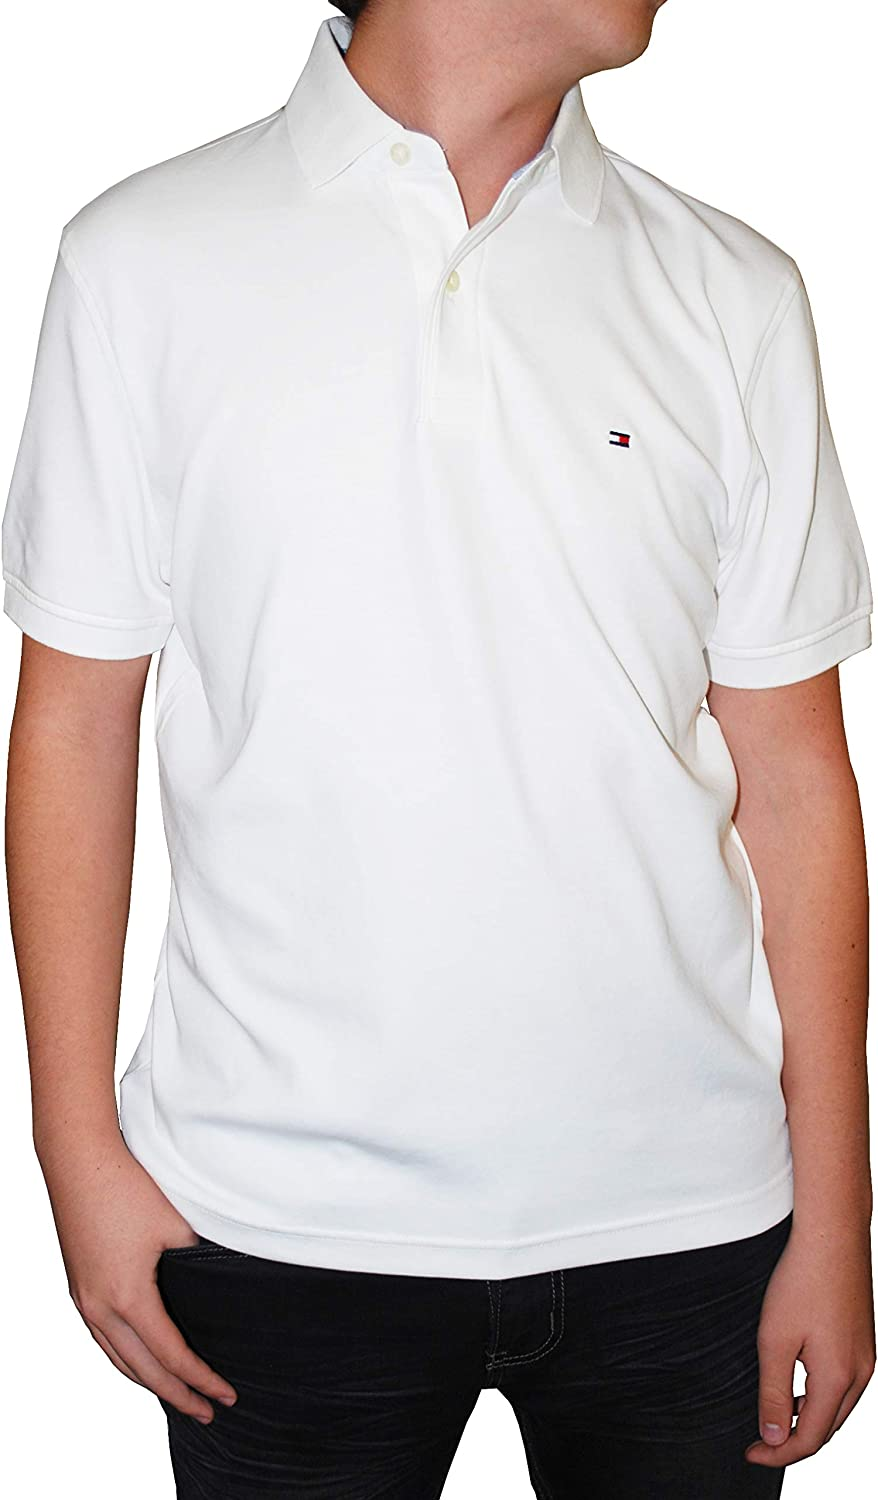 Tommy Hilfiger Men/'s Classic Short Sleeve Polo Shirt